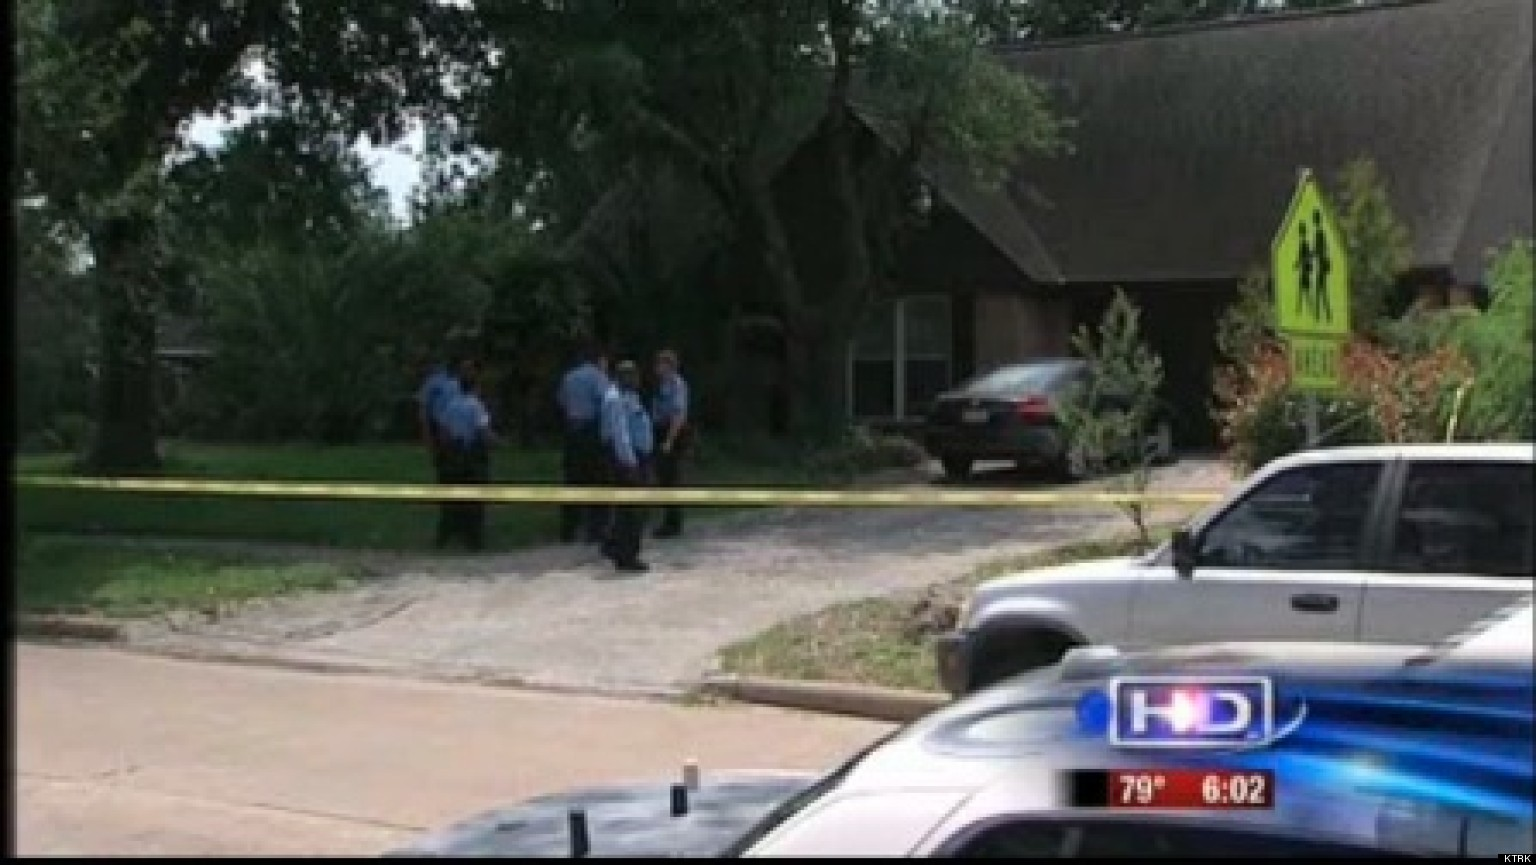 Intruder's Big Mistake Leads To Shootout